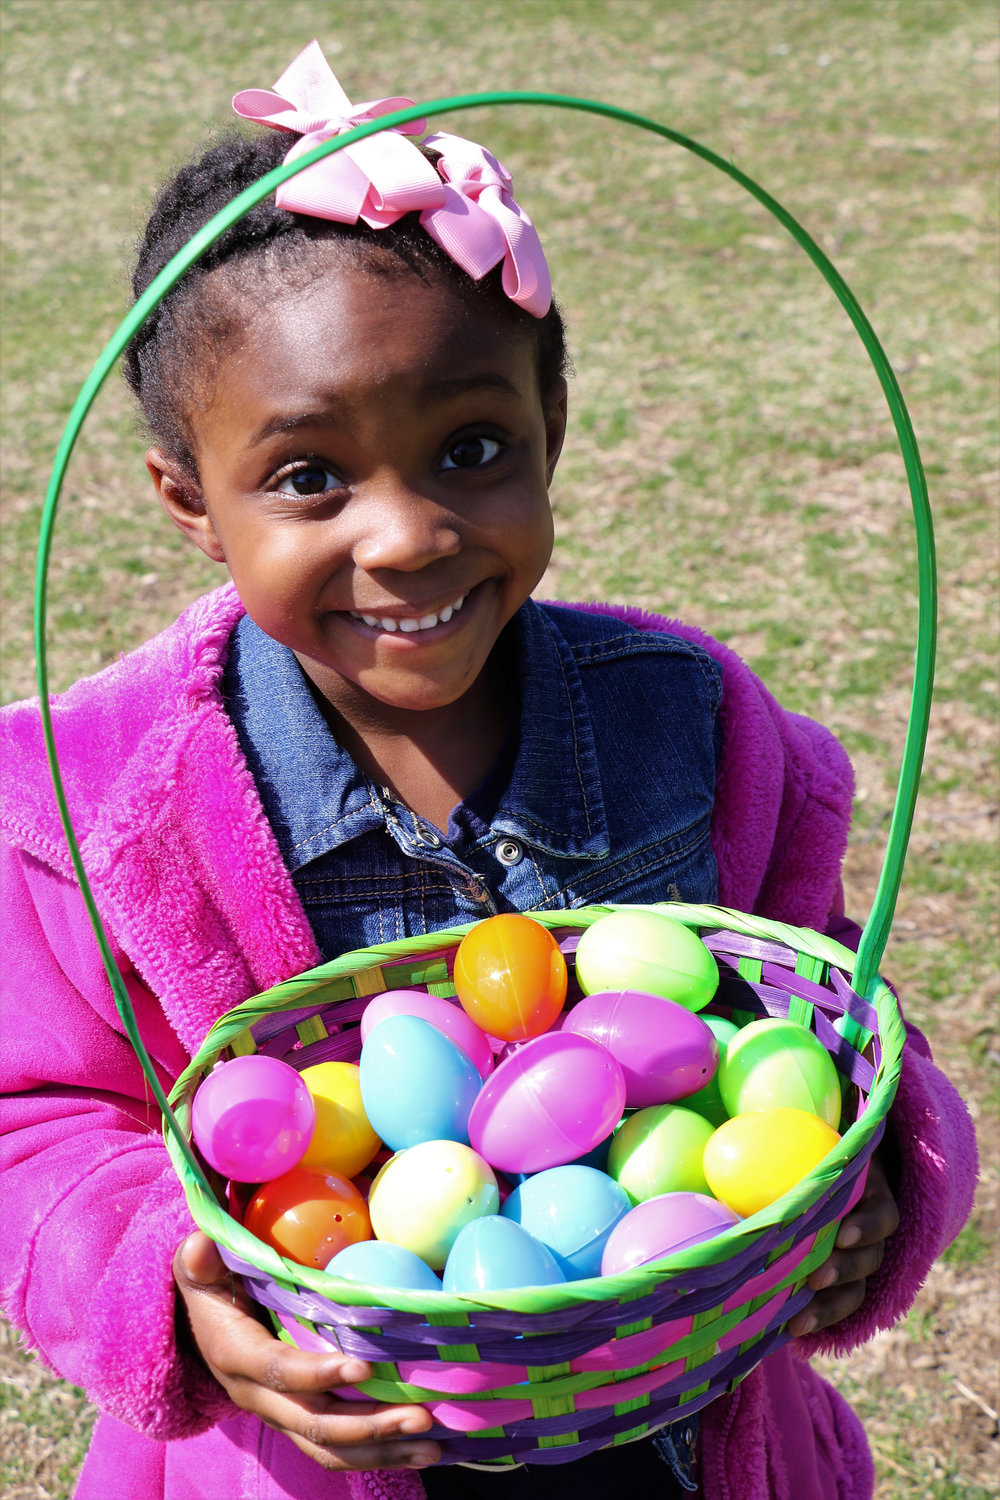 Brielle Volcy, 4, was more than happy with the colorful loot she gathered at Freeport's annual egg hunt last Saturday.